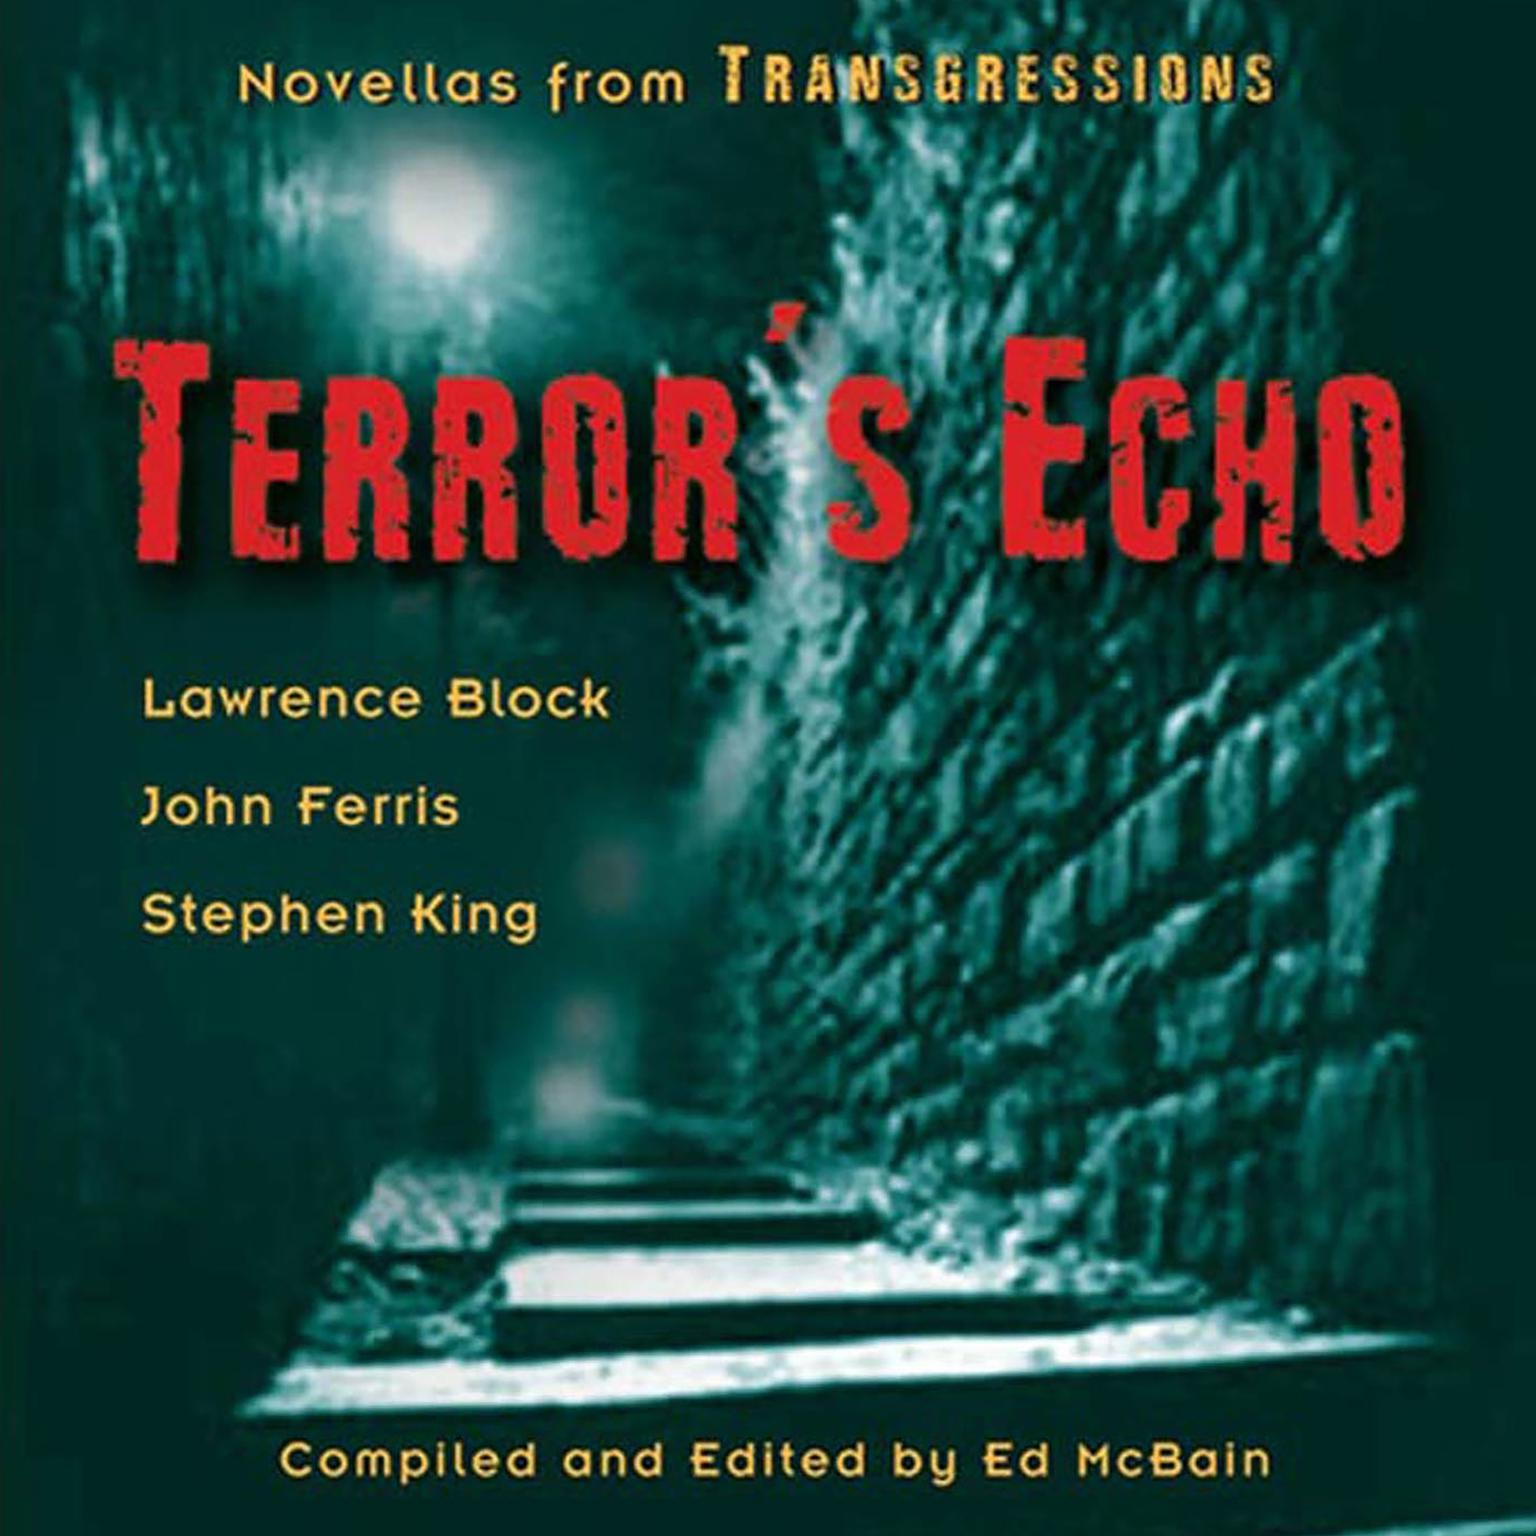 Printable Transgressions: Terror's Echo: Three Novellas from Transgressions Audiobook Cover Art